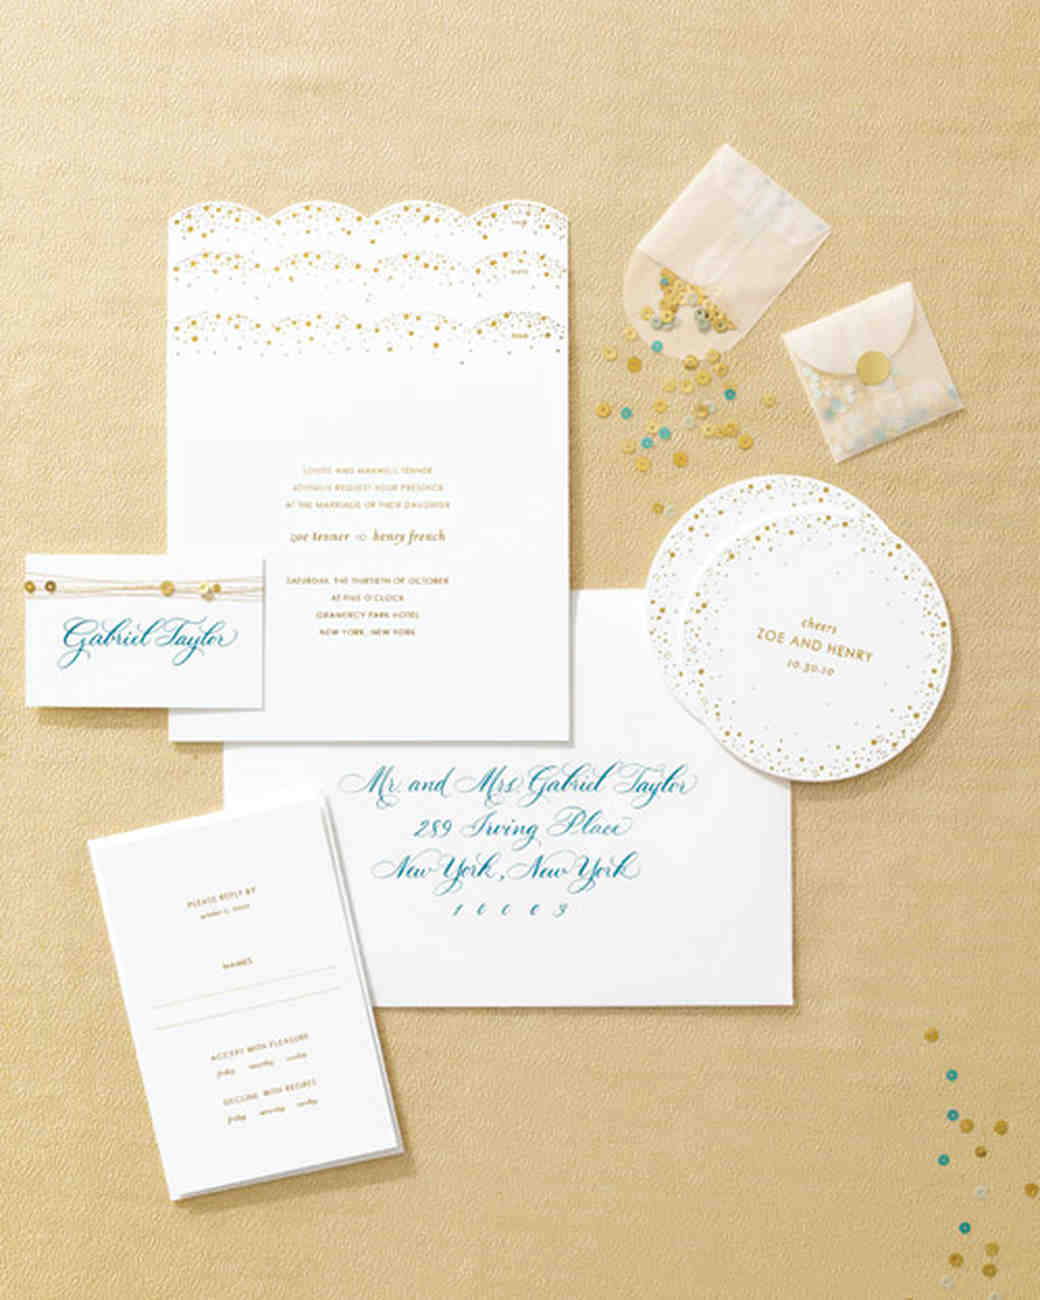 Great Wedding Invitations Inspired By Our Favorite Fashion Trends | Martha  Stewart Weddings